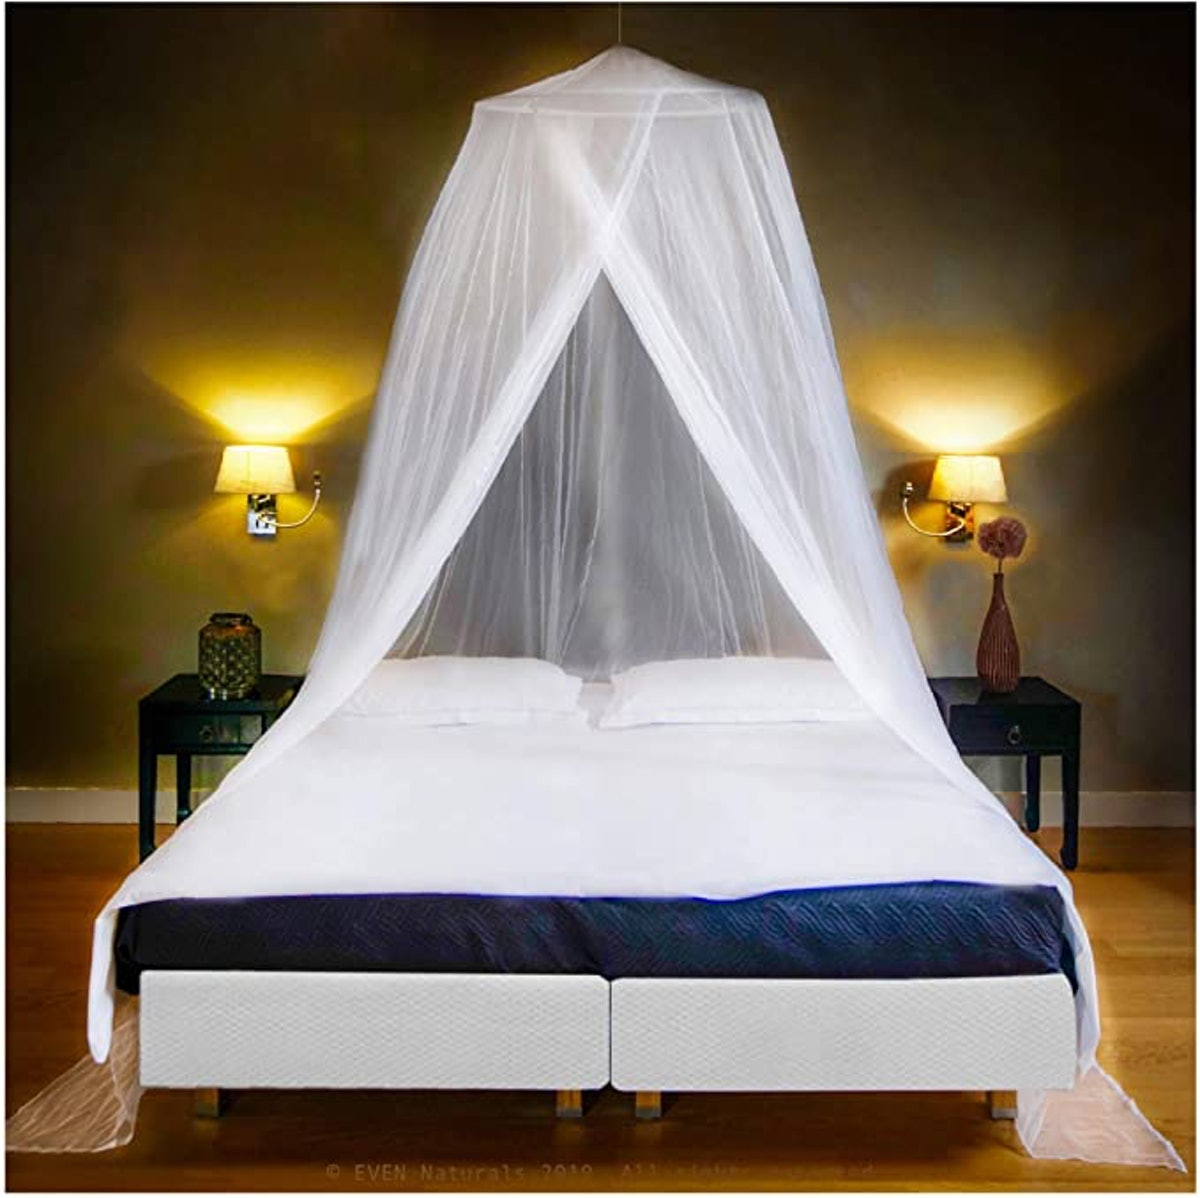 EVEN NATURALS Luxury Mosquito Net Bed Canopy